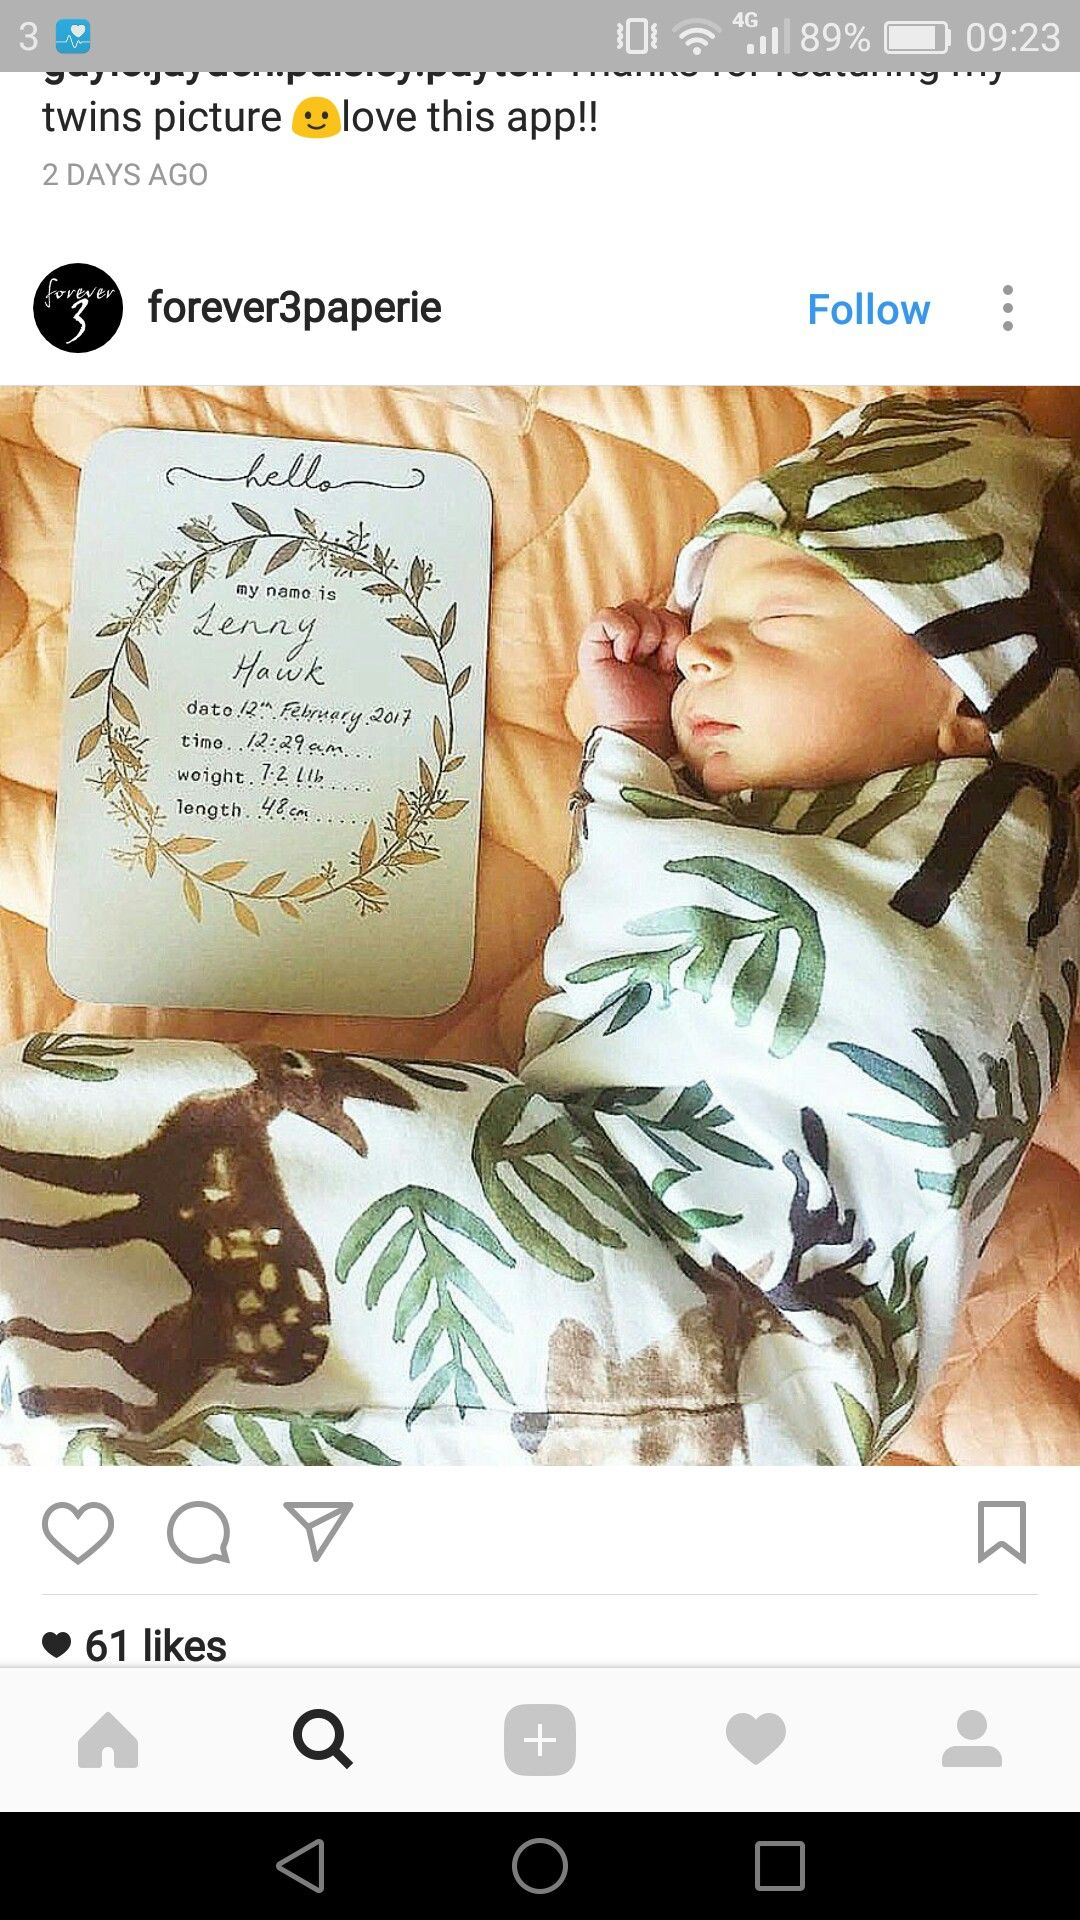 Pin by laura coffey on Baby | Twin pictures, Teddy bear, Teddy